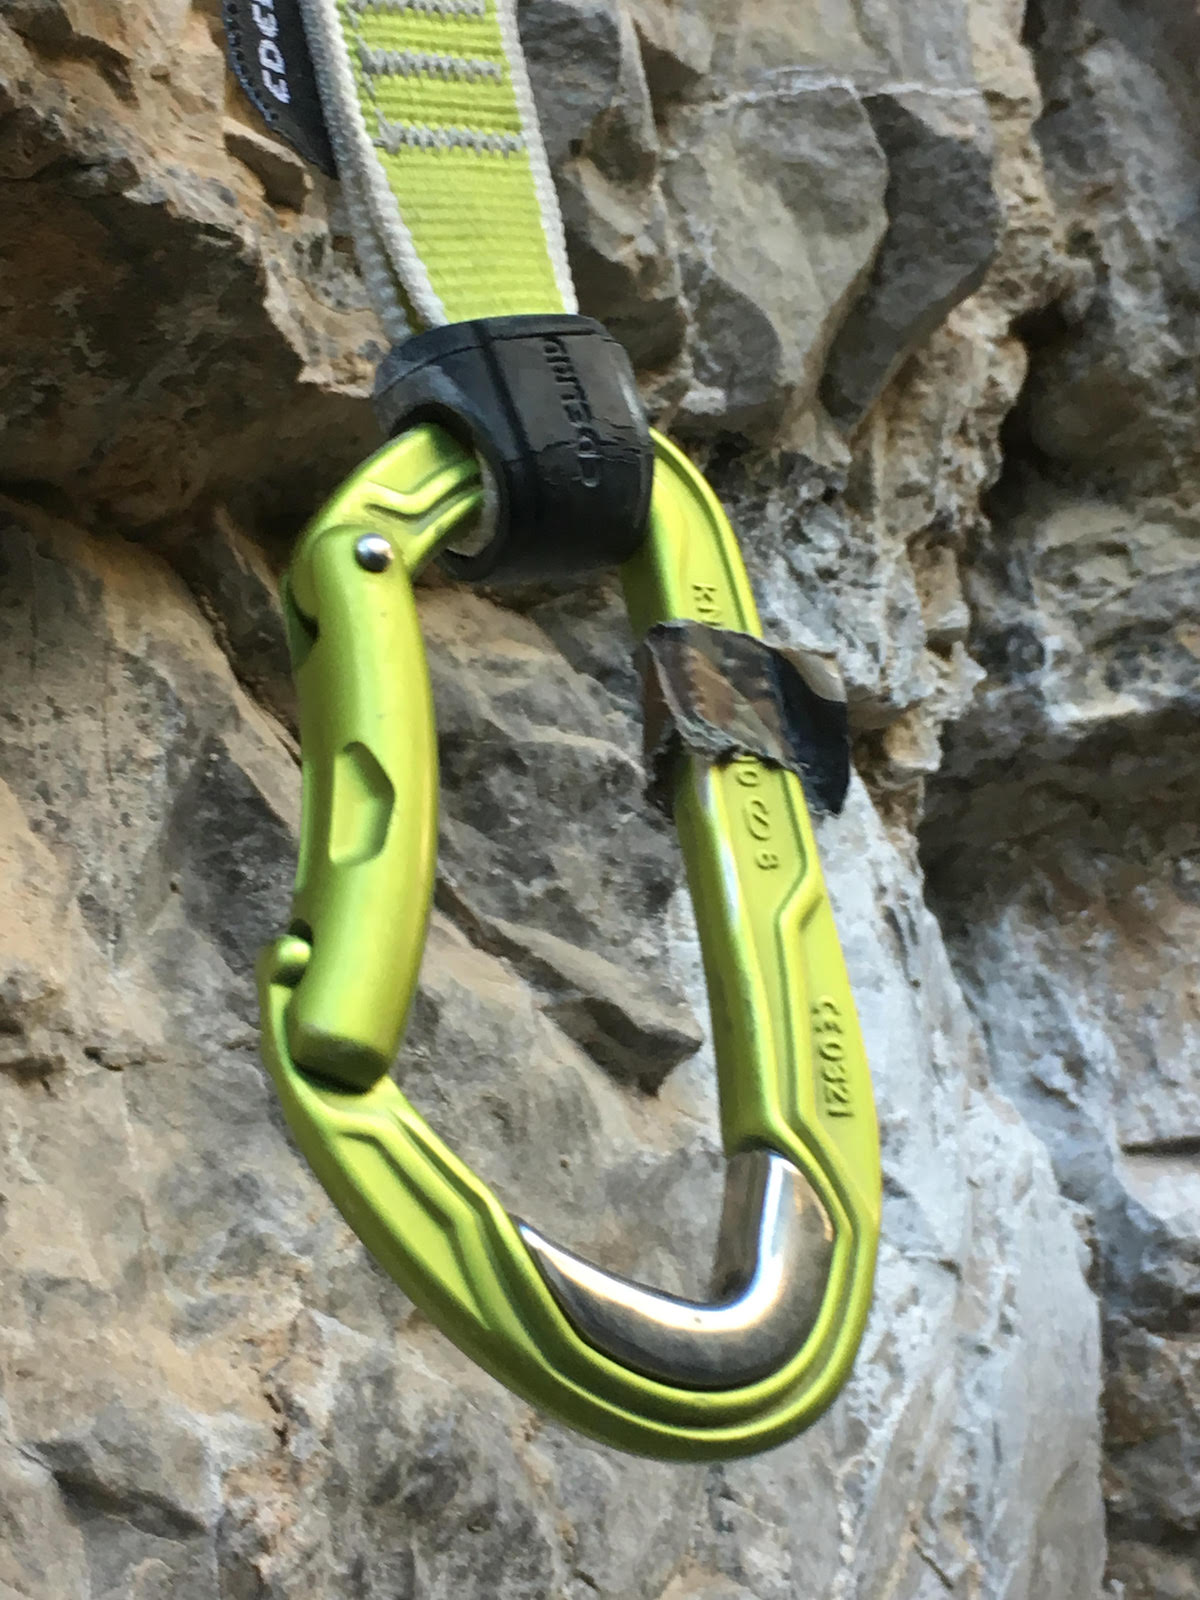 This Edelrid Bulletproof quickdraw hung from the first bolt—a high-wear zone for carabiners—on one of the most popular routes in Rifle for several months and it hardly showed any sign of wear afterward. The regular aluminum carabiner that previously occupied this spot was severely grooved within a matter of weeks. [Photo] Derek Franz